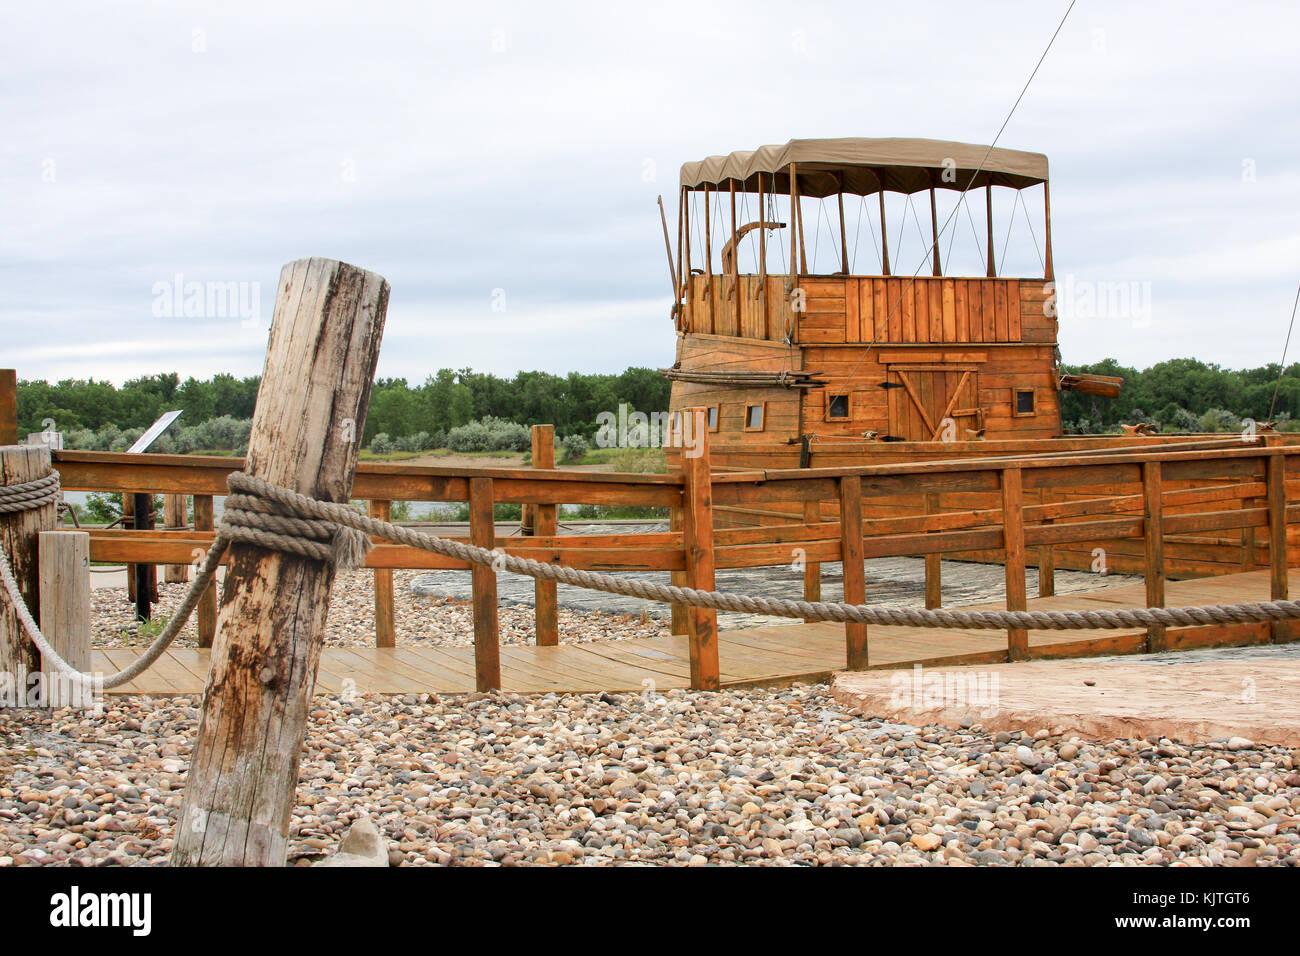 historic landmarck lewis and clark aged wood river boat on shore of missouri river Bismarck,ND - Stock Image